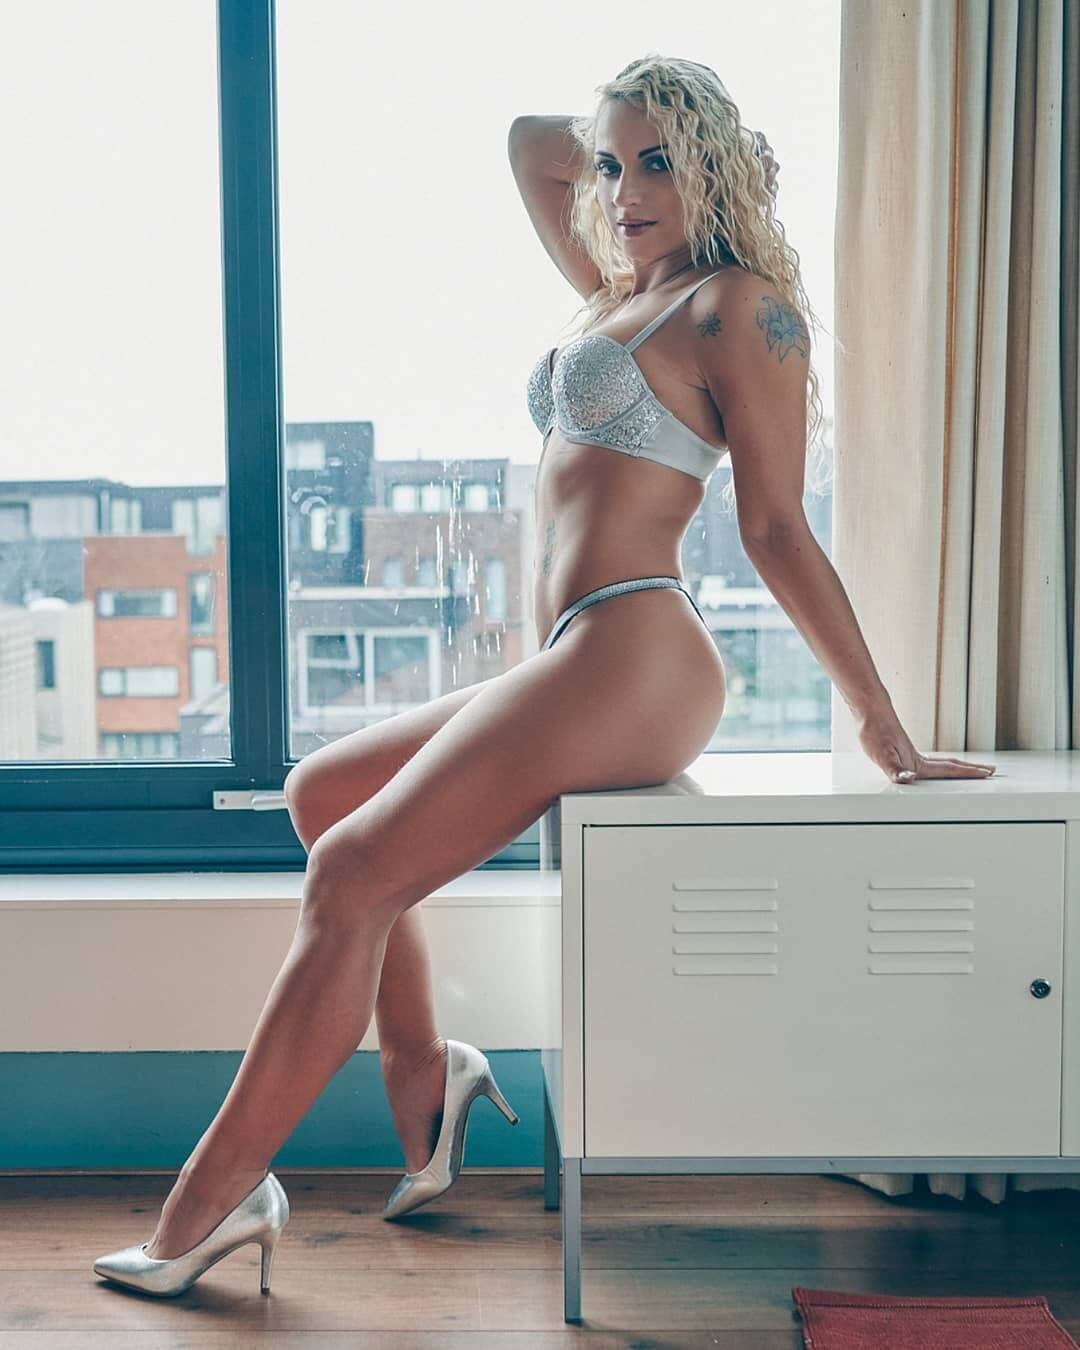 Beautiful blonde Dutch over 30 model and mom Willeke Bartels @willekebartels.fitmodel sitting by the window holding her arm up showing her hot inked body and long sexy legs wearing silver lingerie and high heels in a boudoir photo session